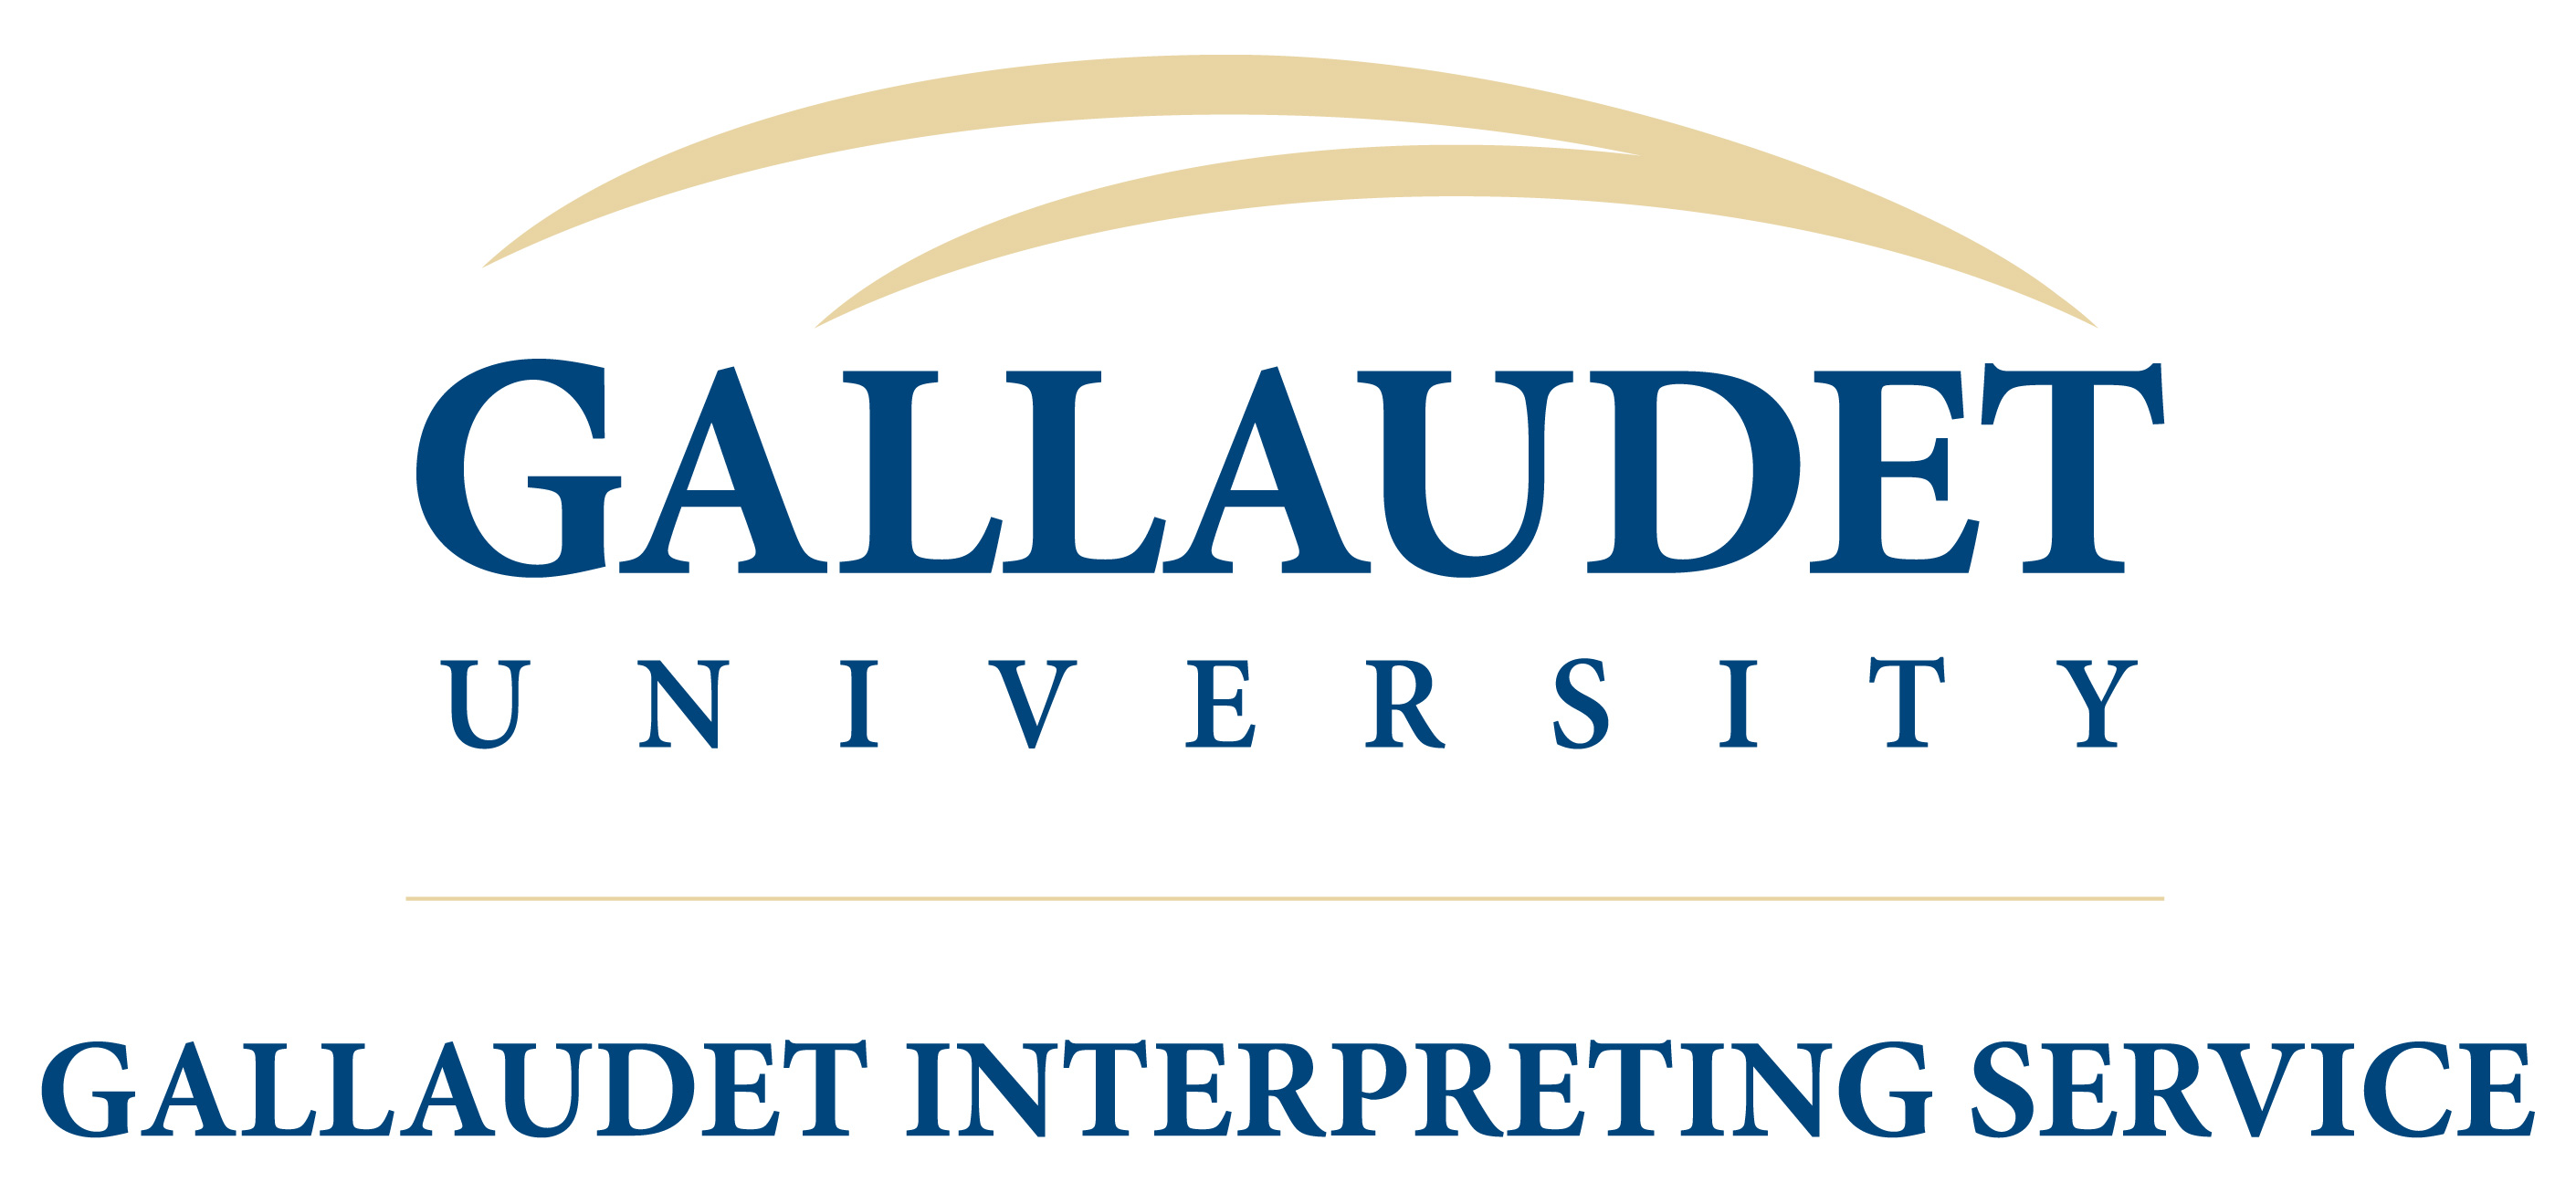 Gallaudet Interpreting Service